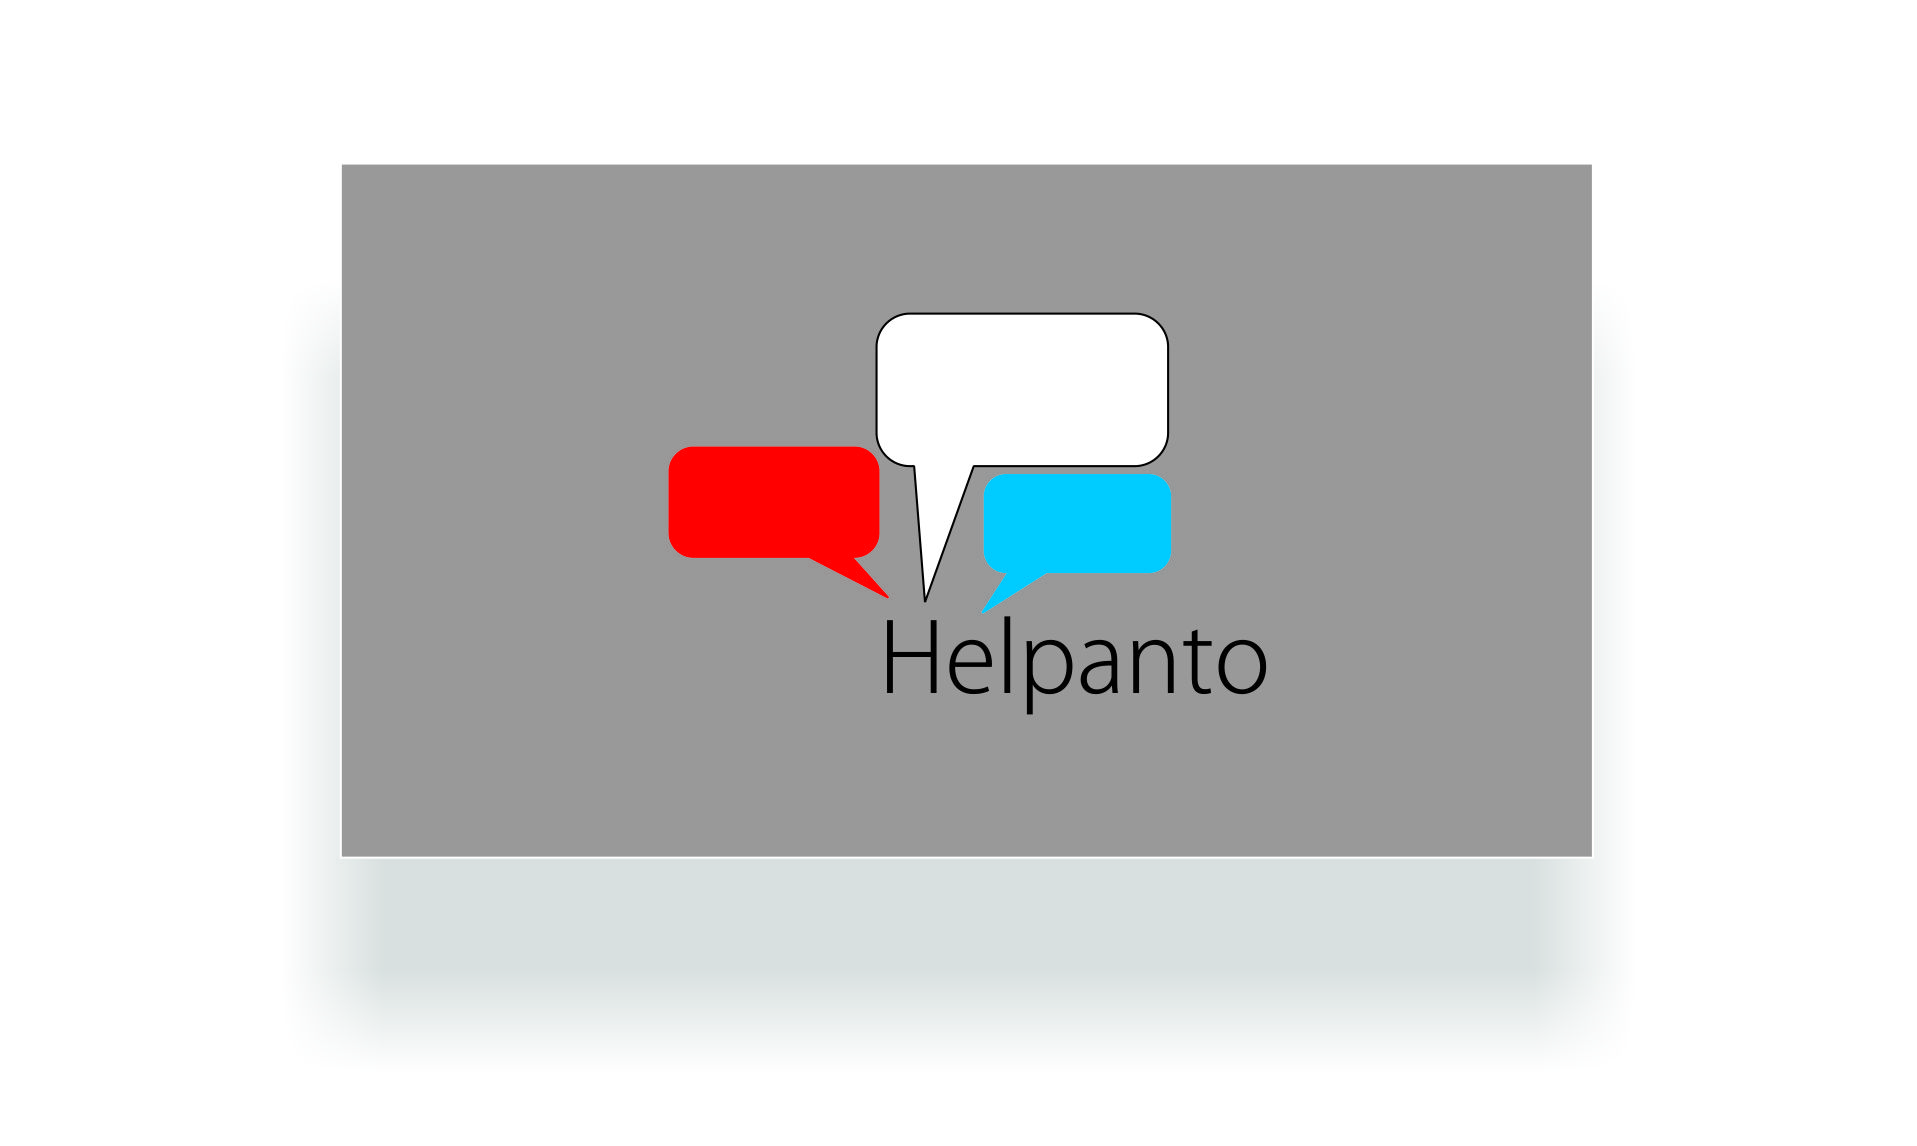 Logo Design by Afraseem Ibrahim - Entry No. 136 in the Logo Design Contest Artistic Logo Design for helpanto.